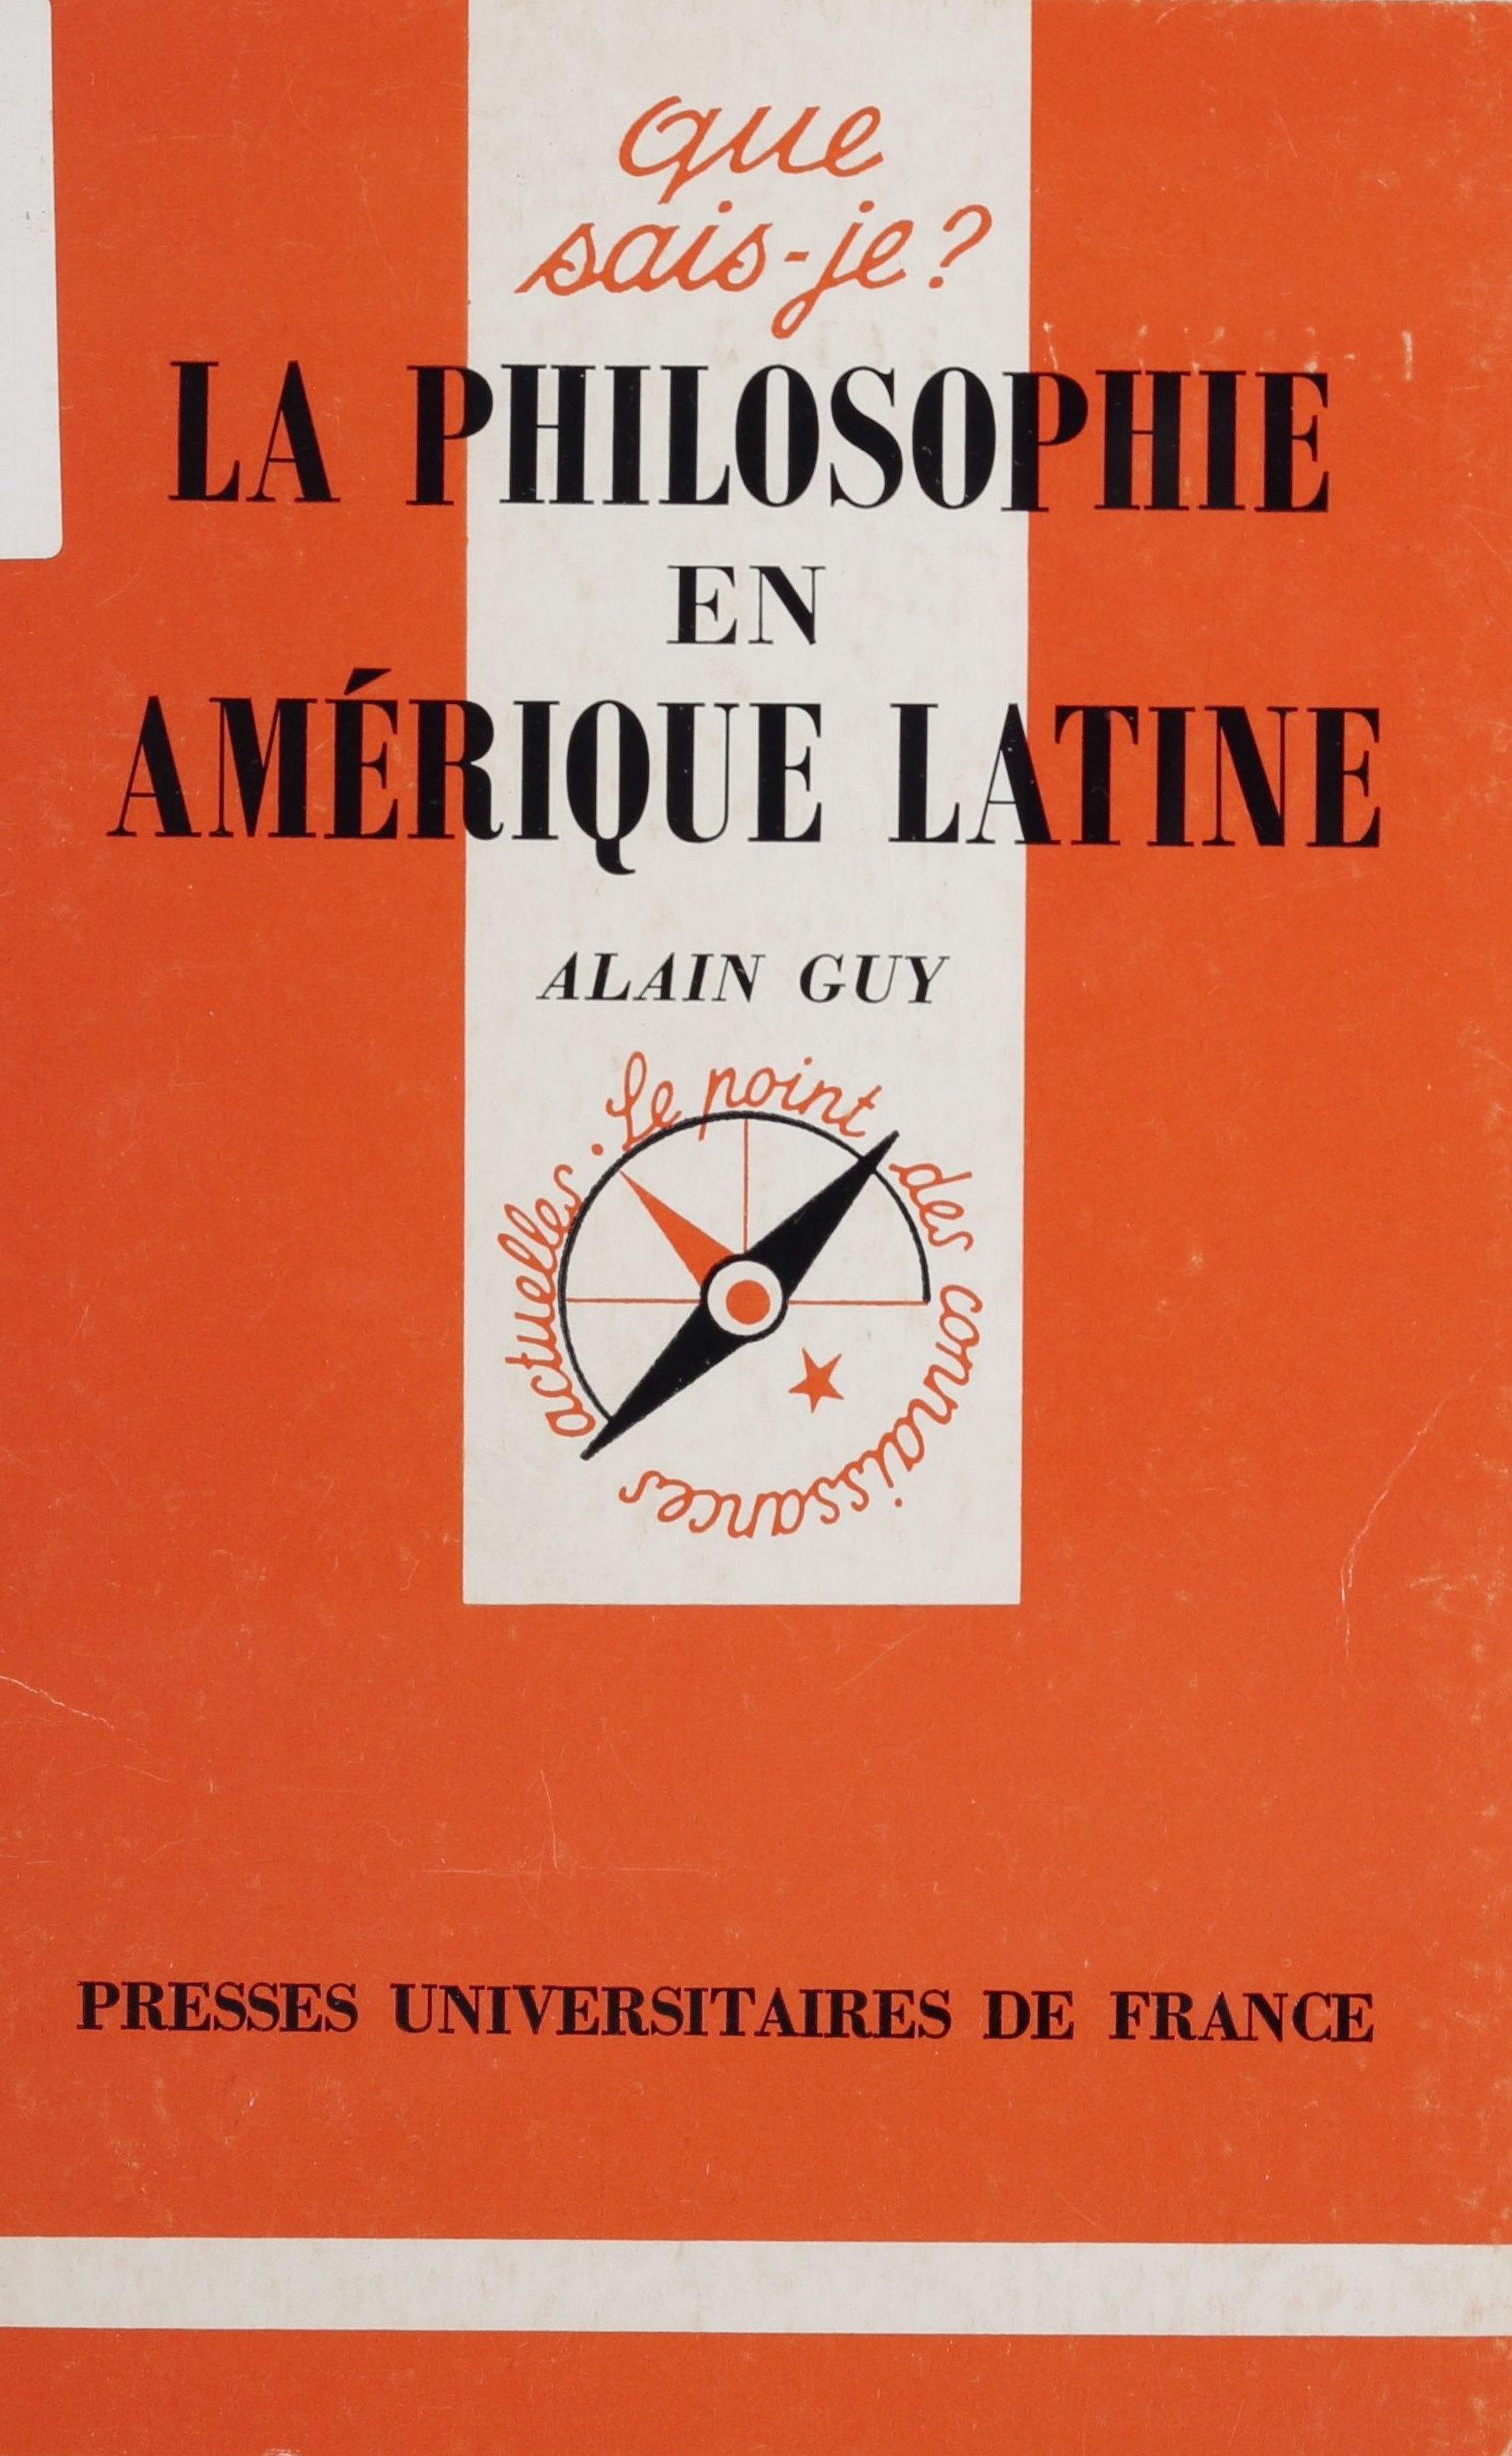 La Philosophie en Amérique latine - Alain Guy